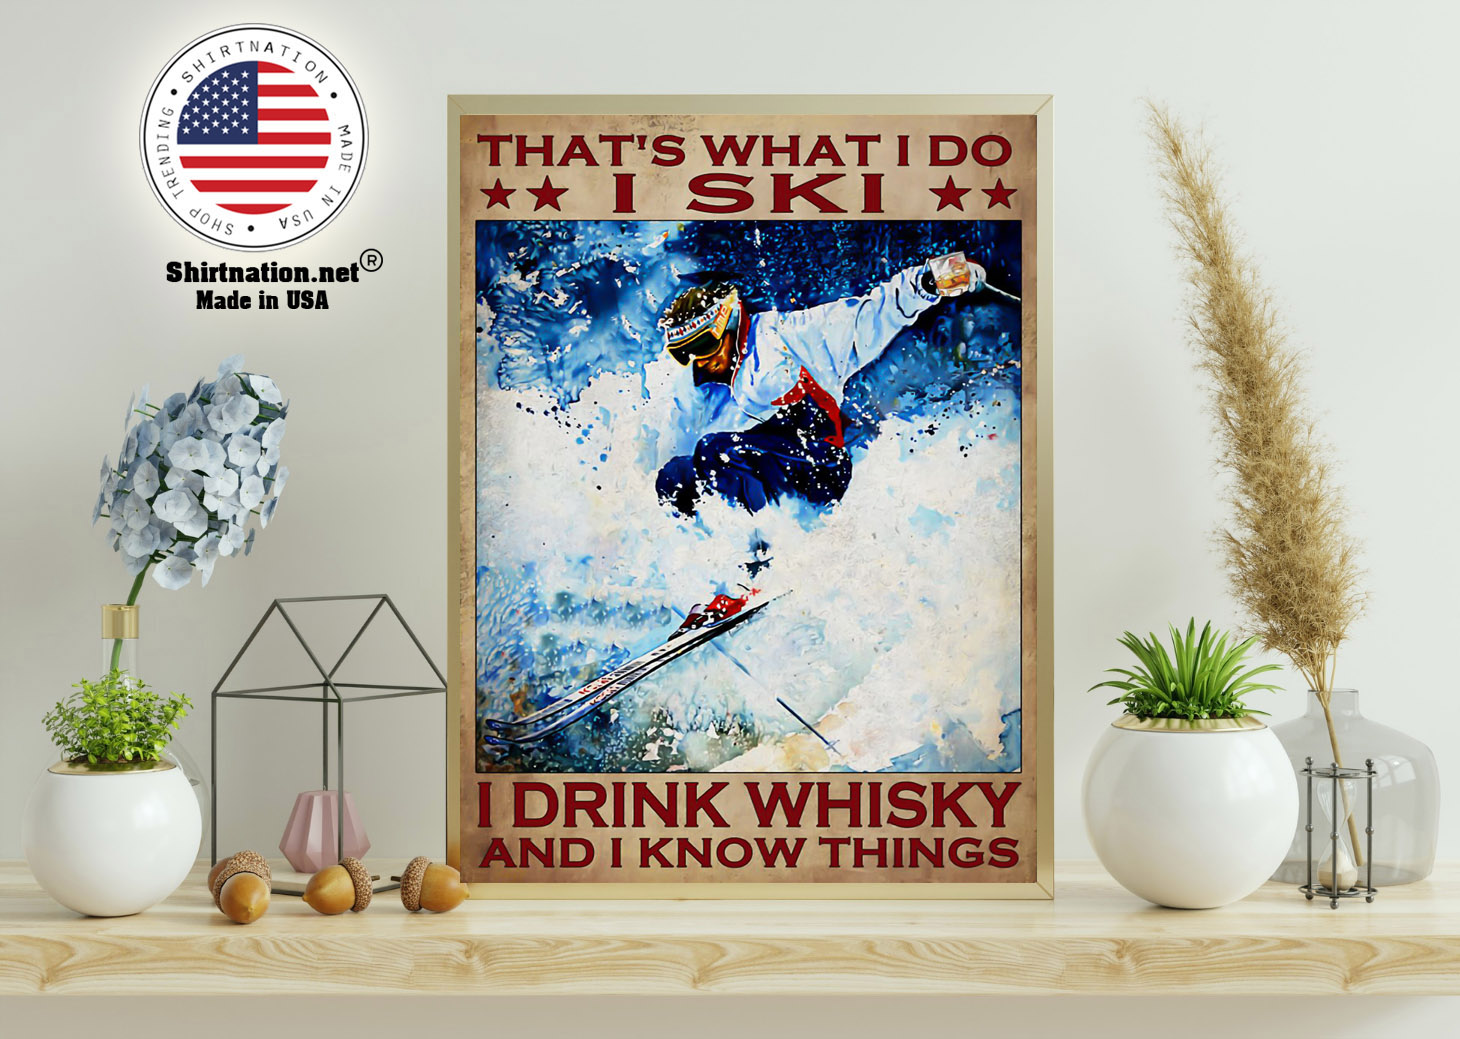 Thats what I do I ski I drink whisky and I know things poster 11